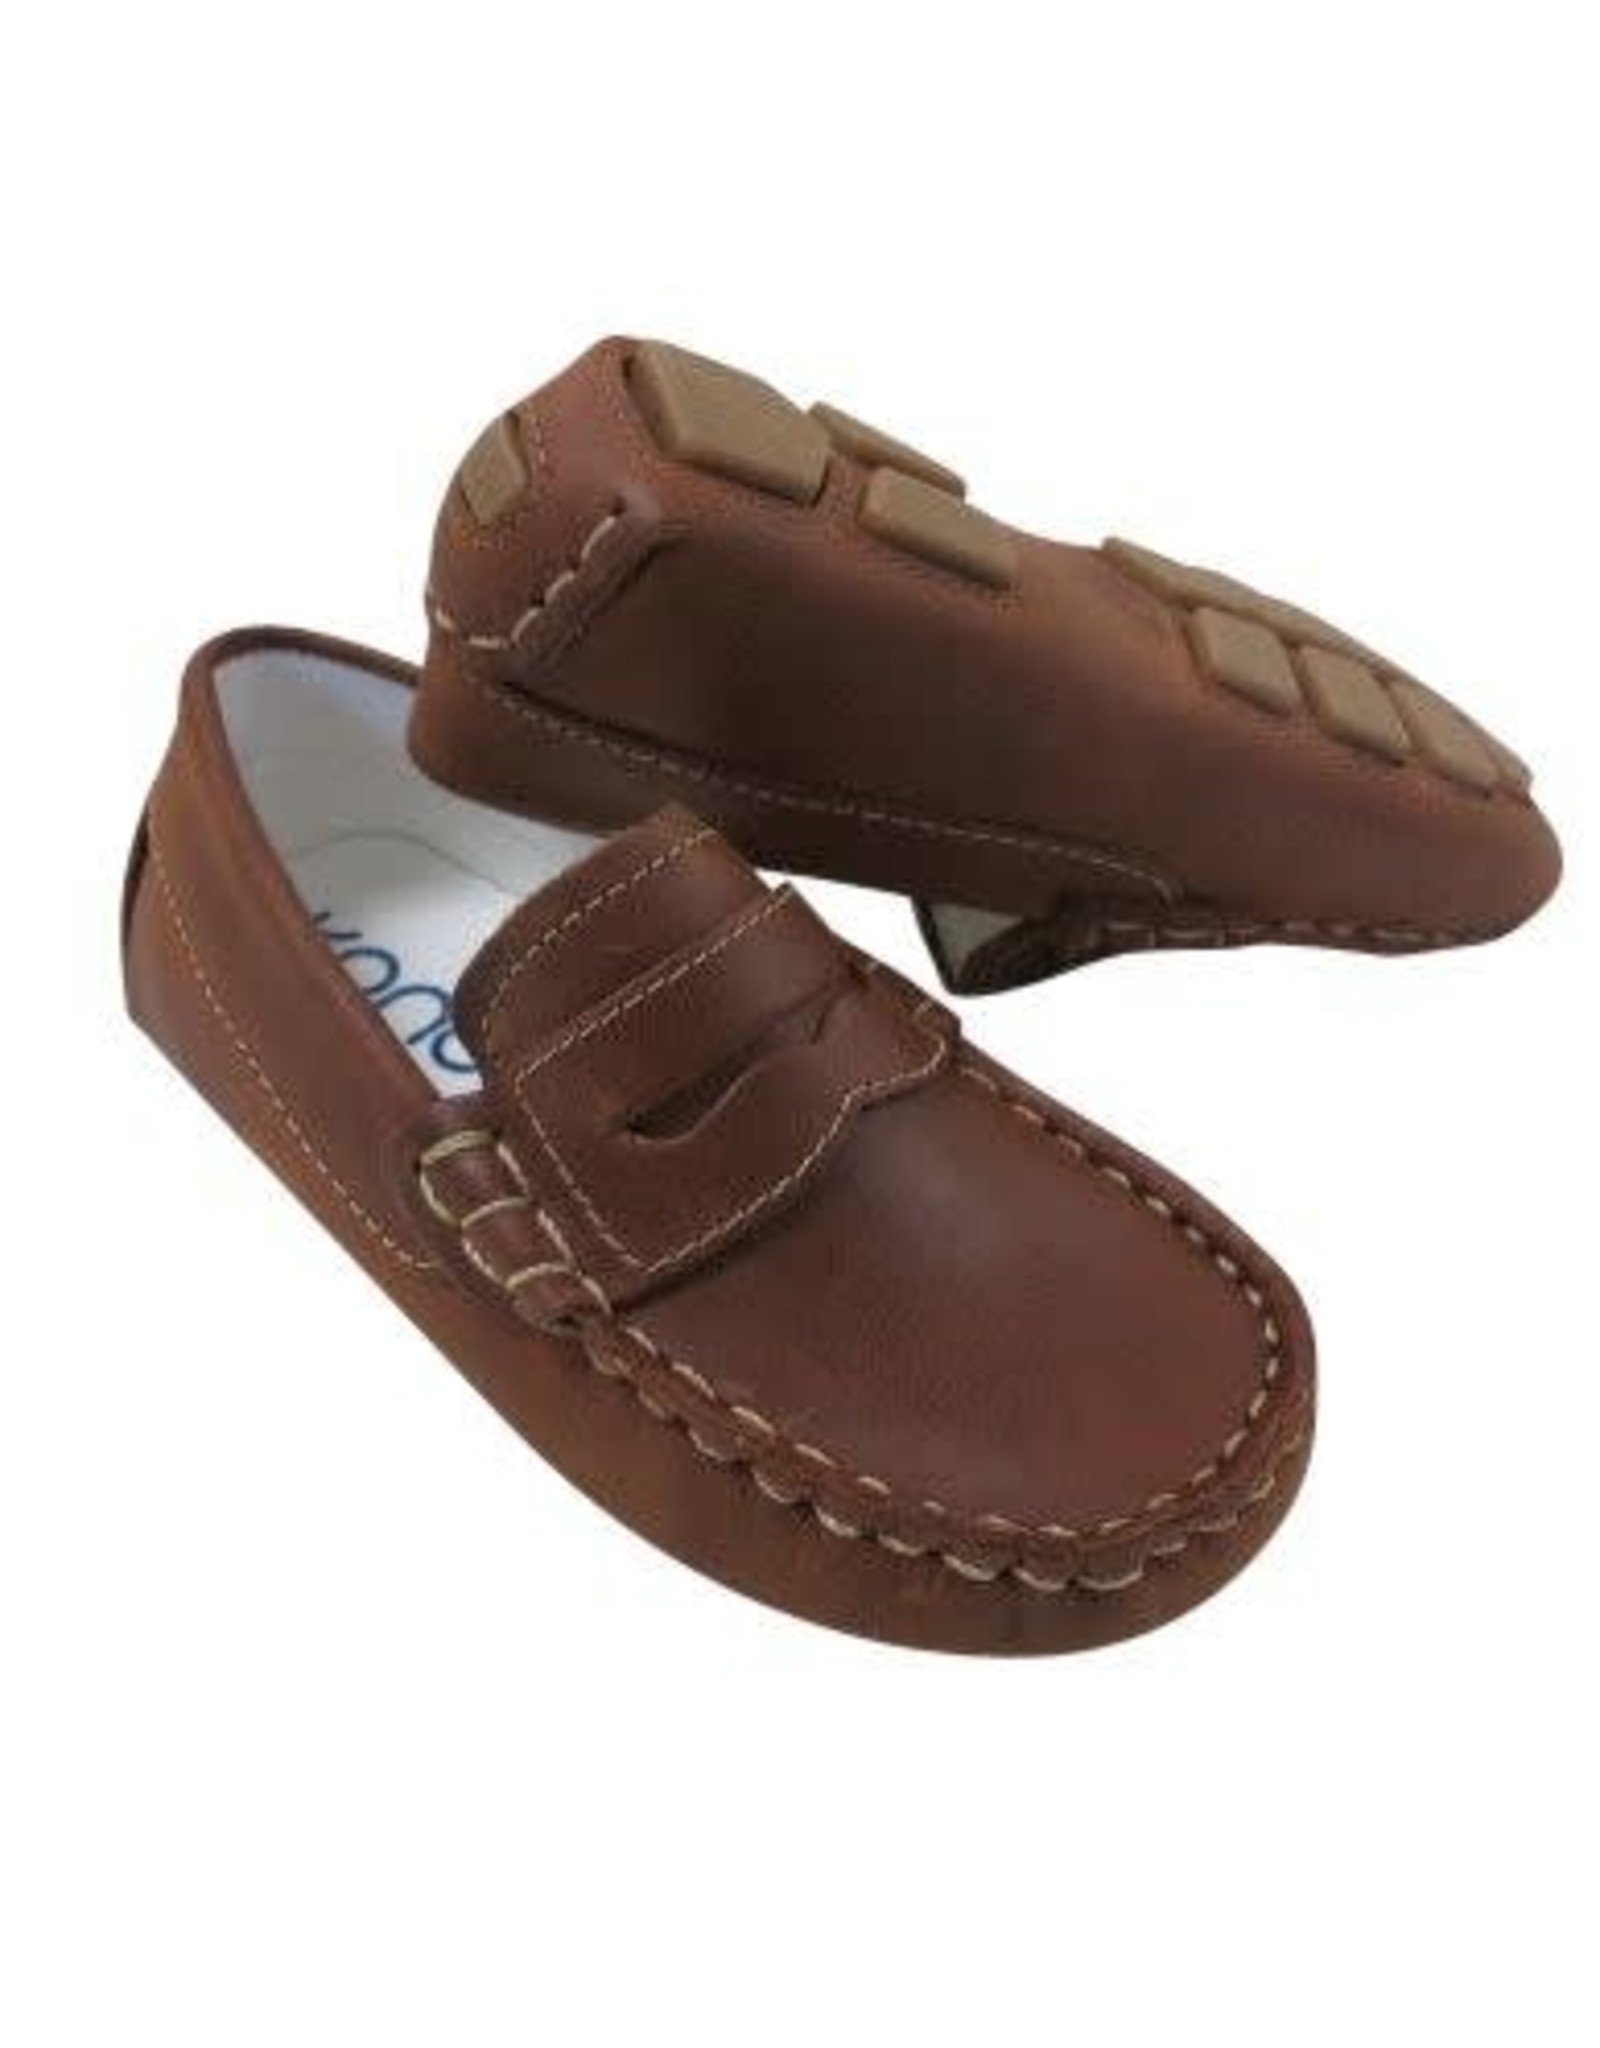 Kone Driving Moc Penny Loafer in Copper Distressed Leather